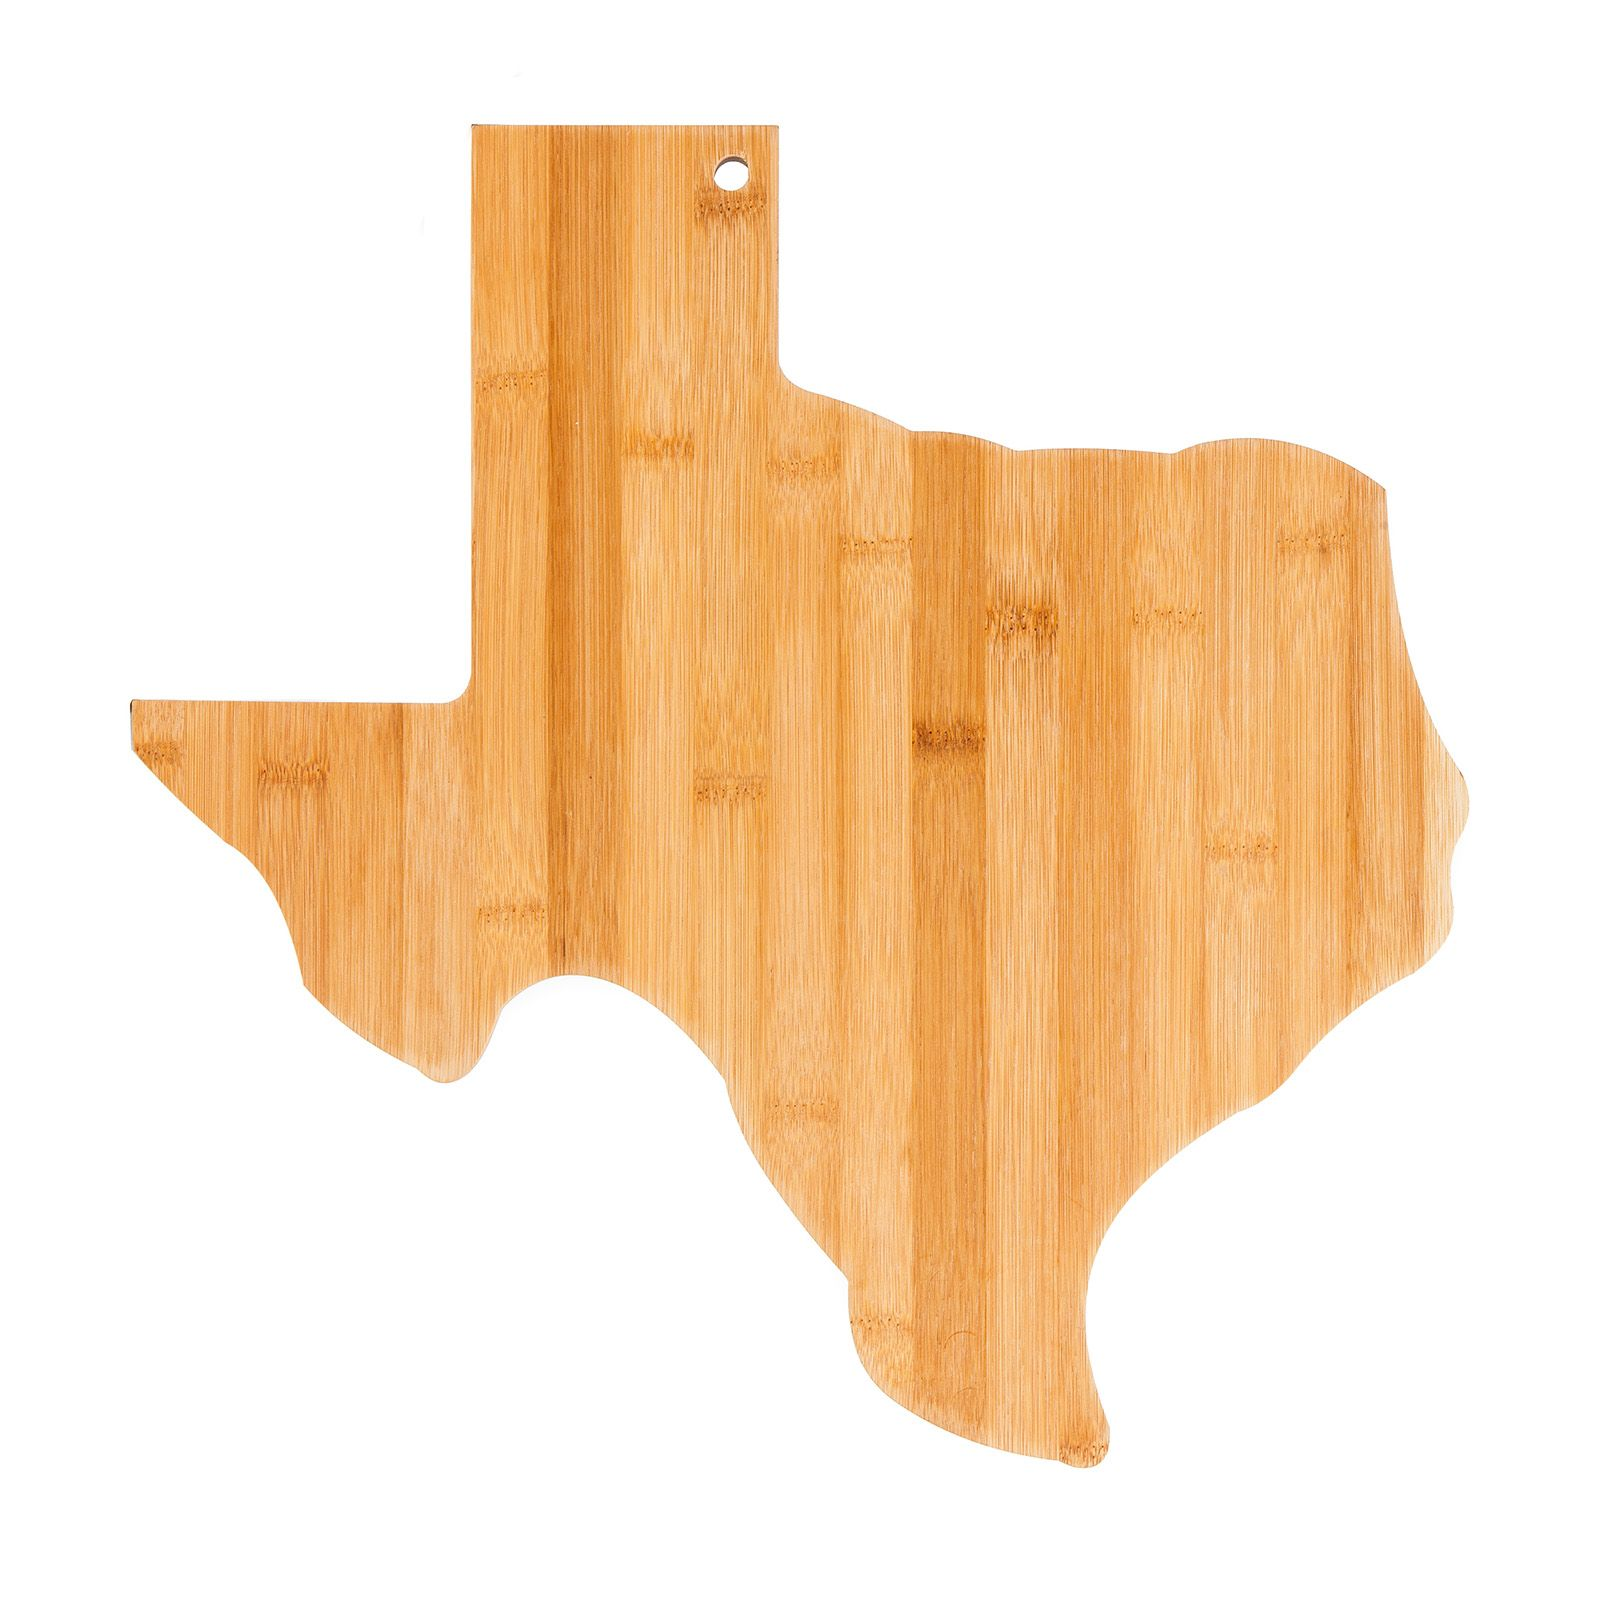 Texas Shape Wooden Cutting Board